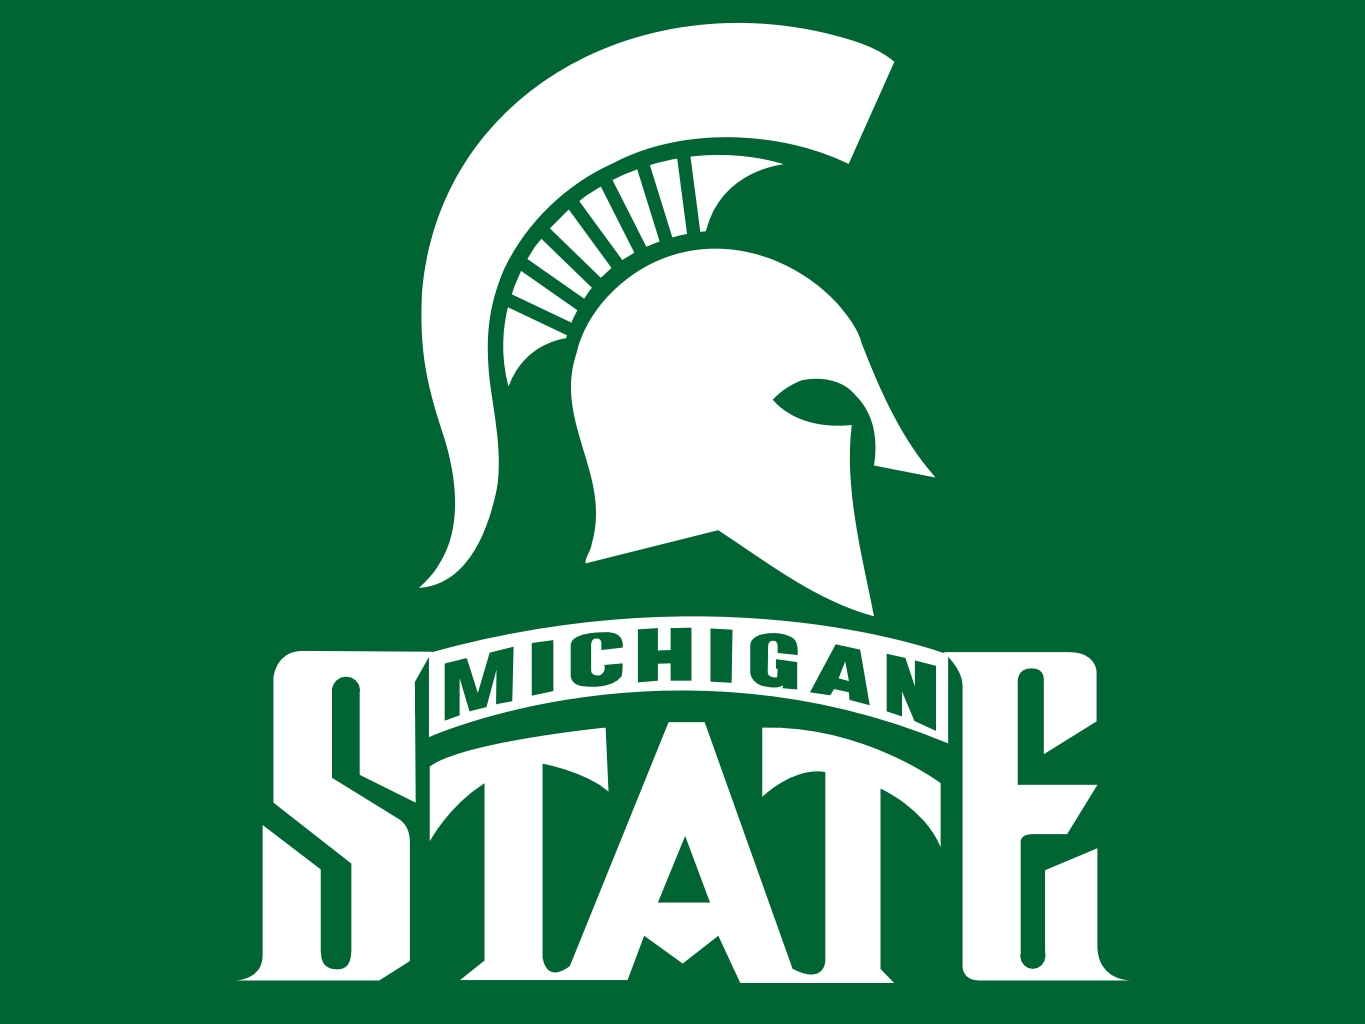 Michigan state basketball logo